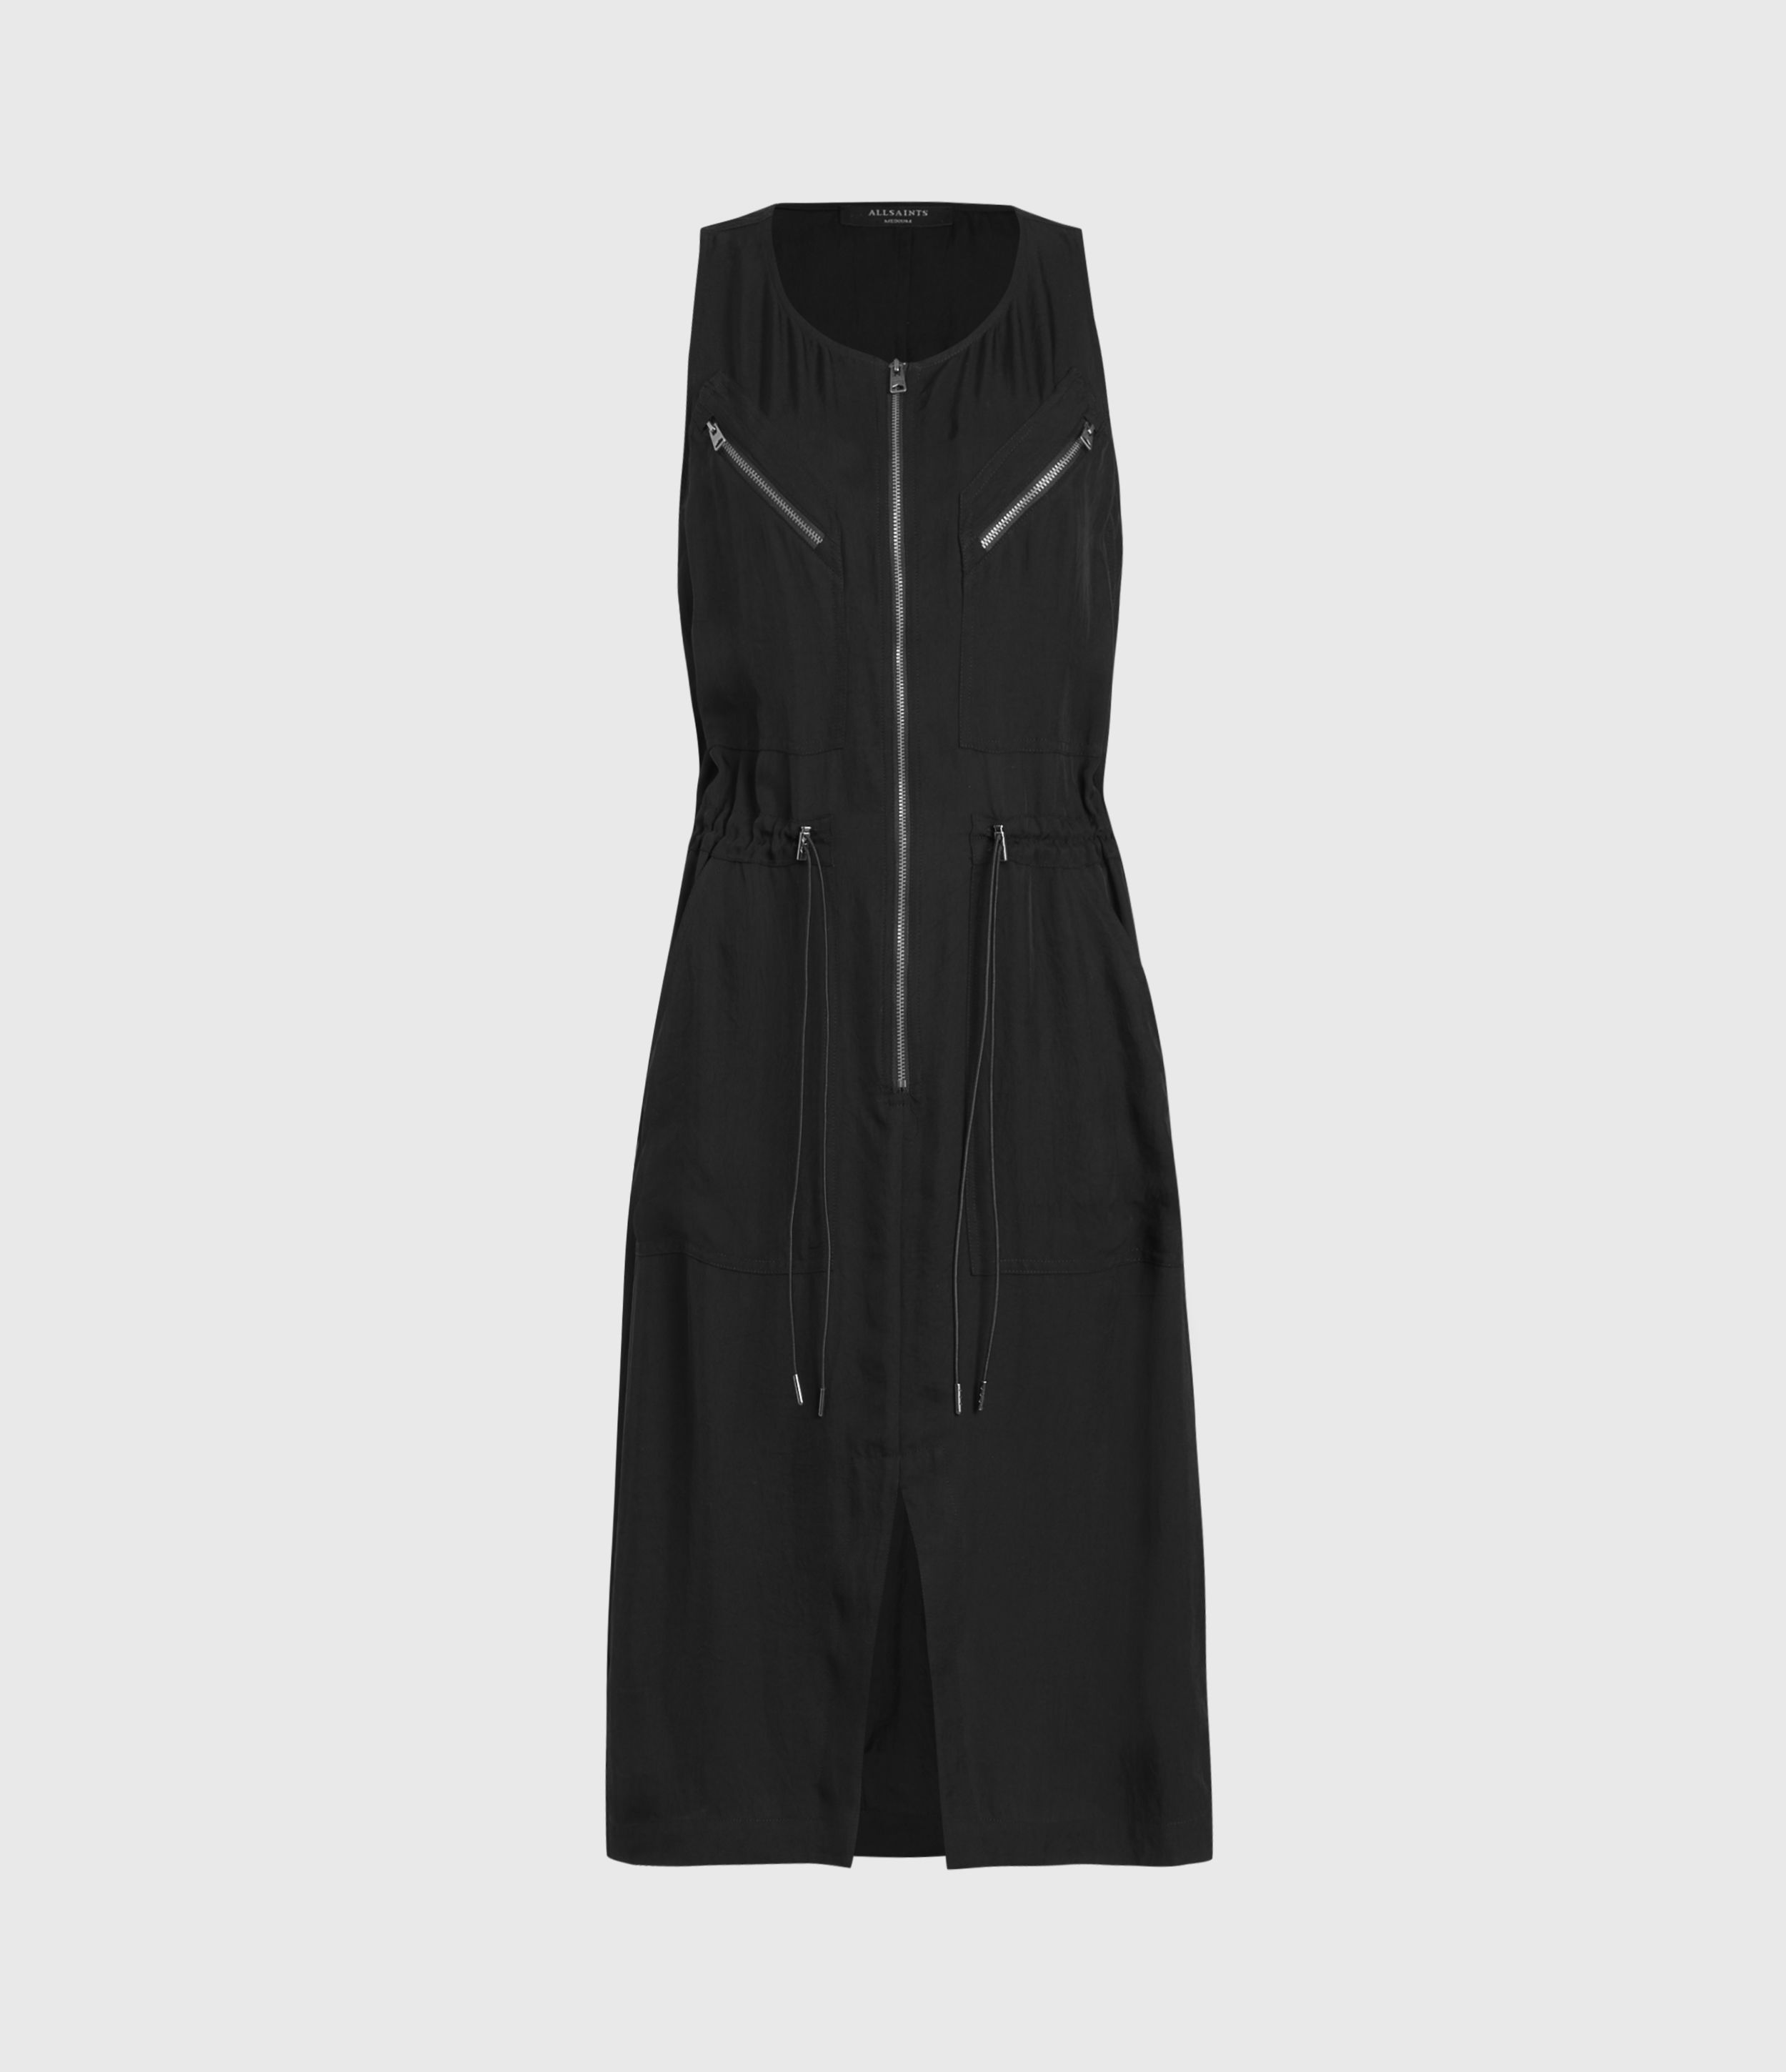 AllSaints Vola Dress